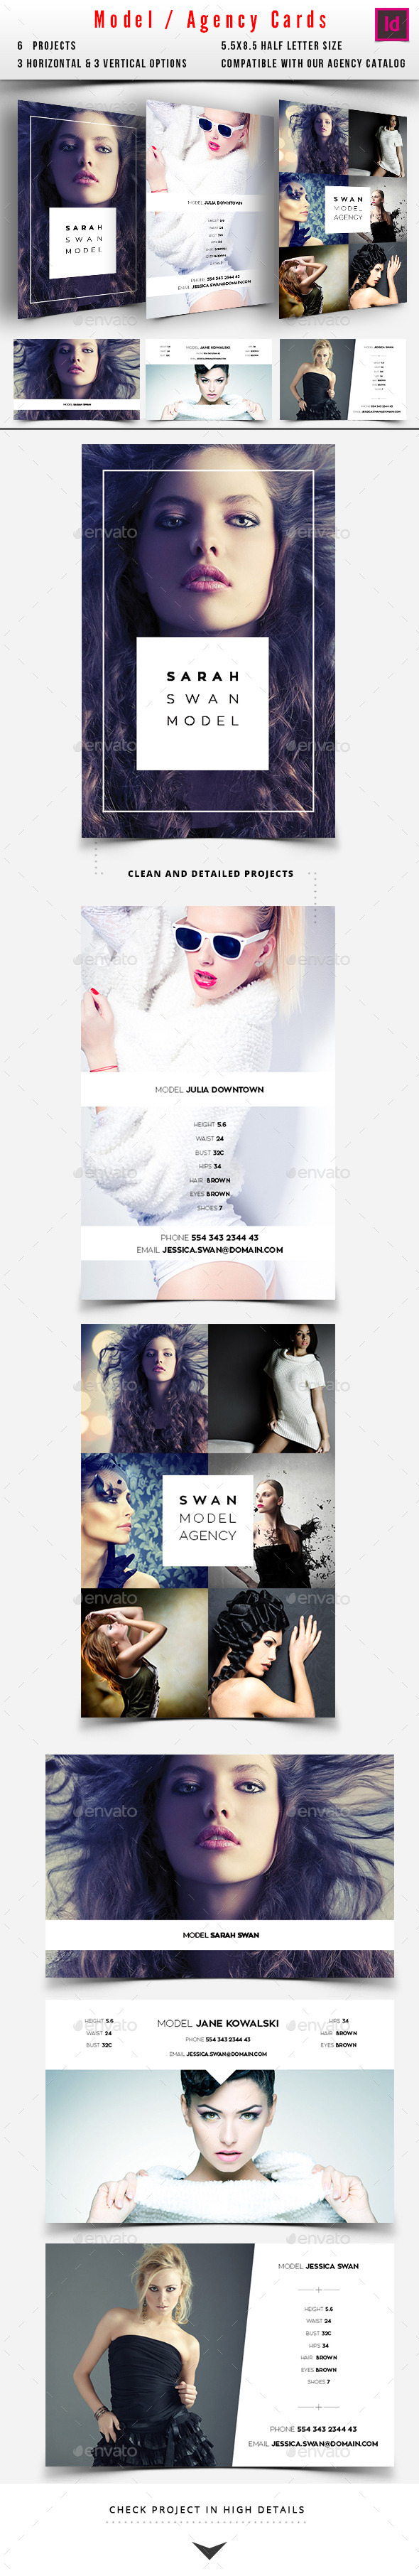 Model / Agency Comp Card - Miscellaneous Print Templates